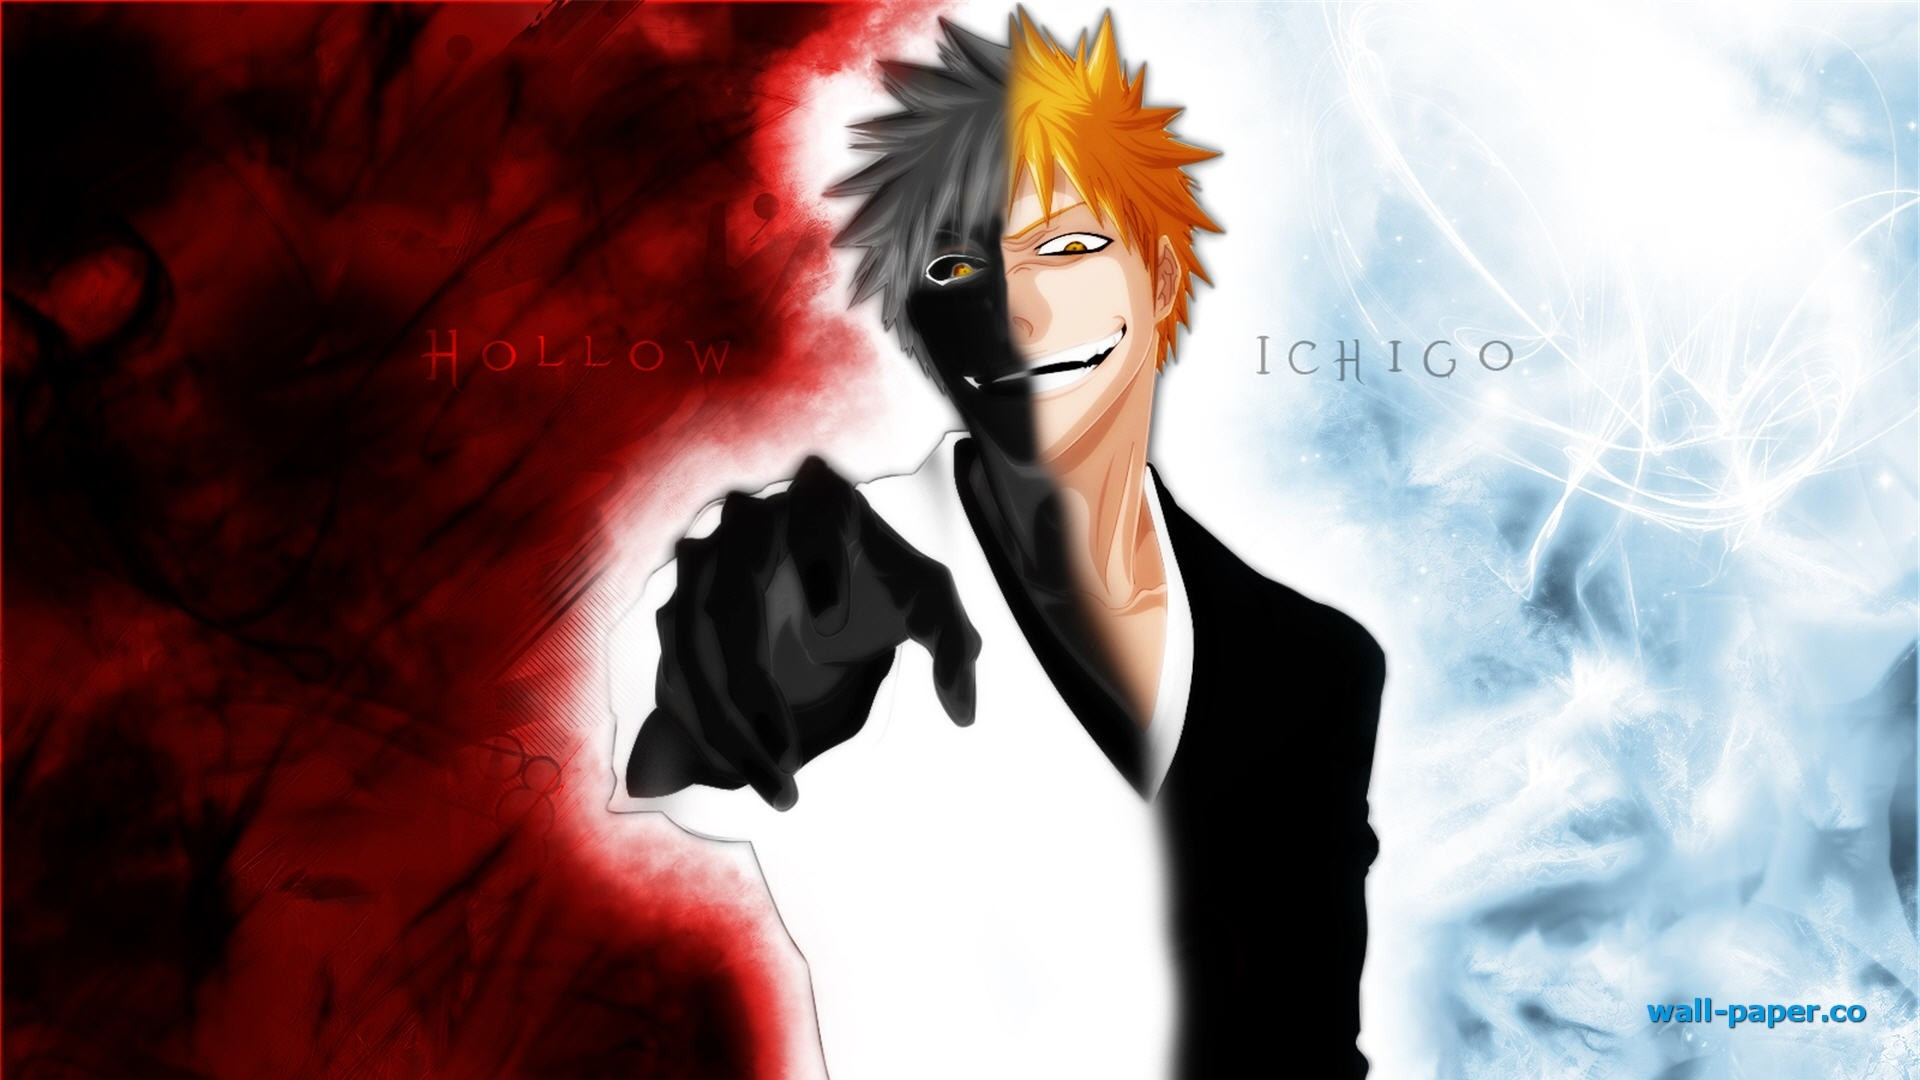 1920x1080 Ichigo Hollow - Bleach wallpaper